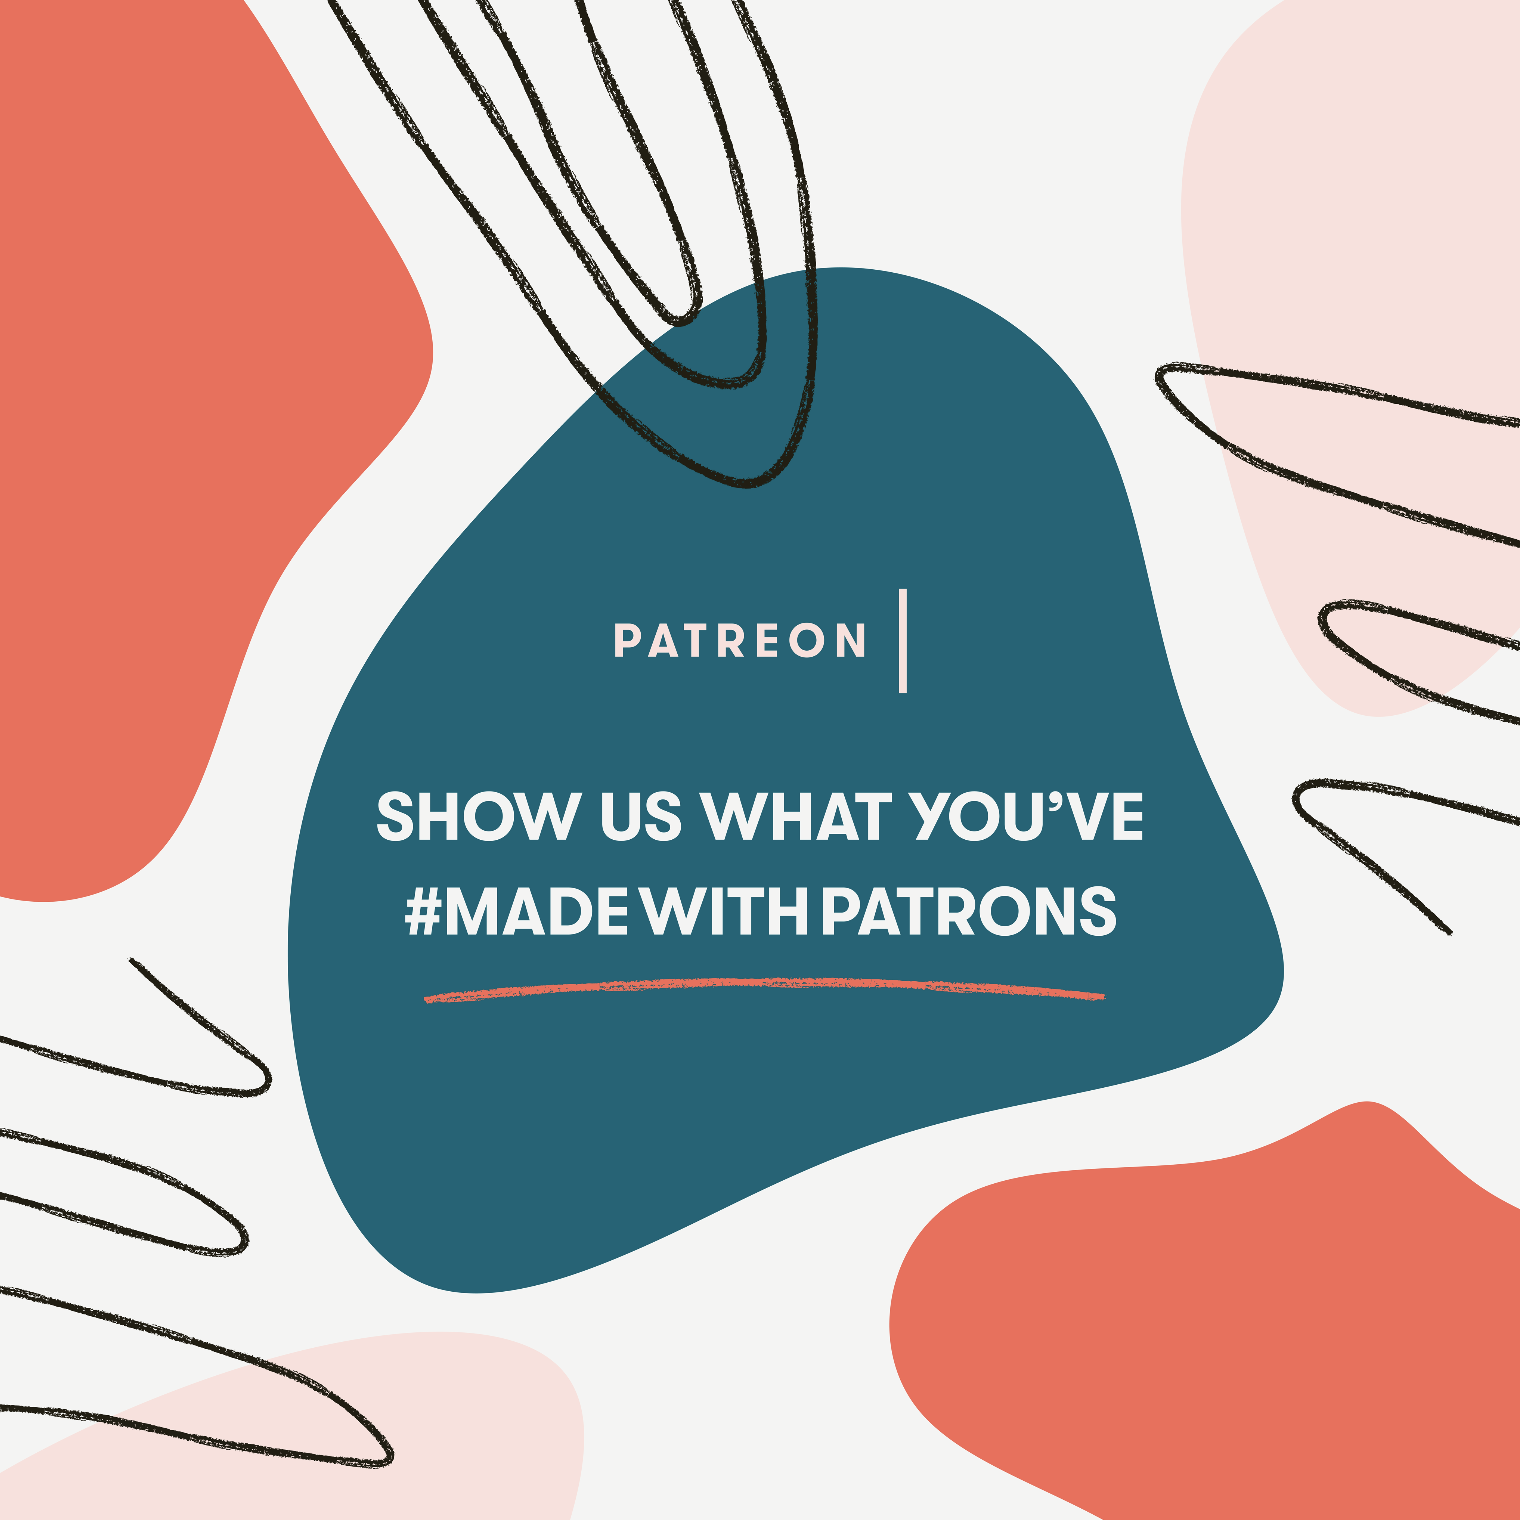 Show Us What You've #MadeWithPatrons